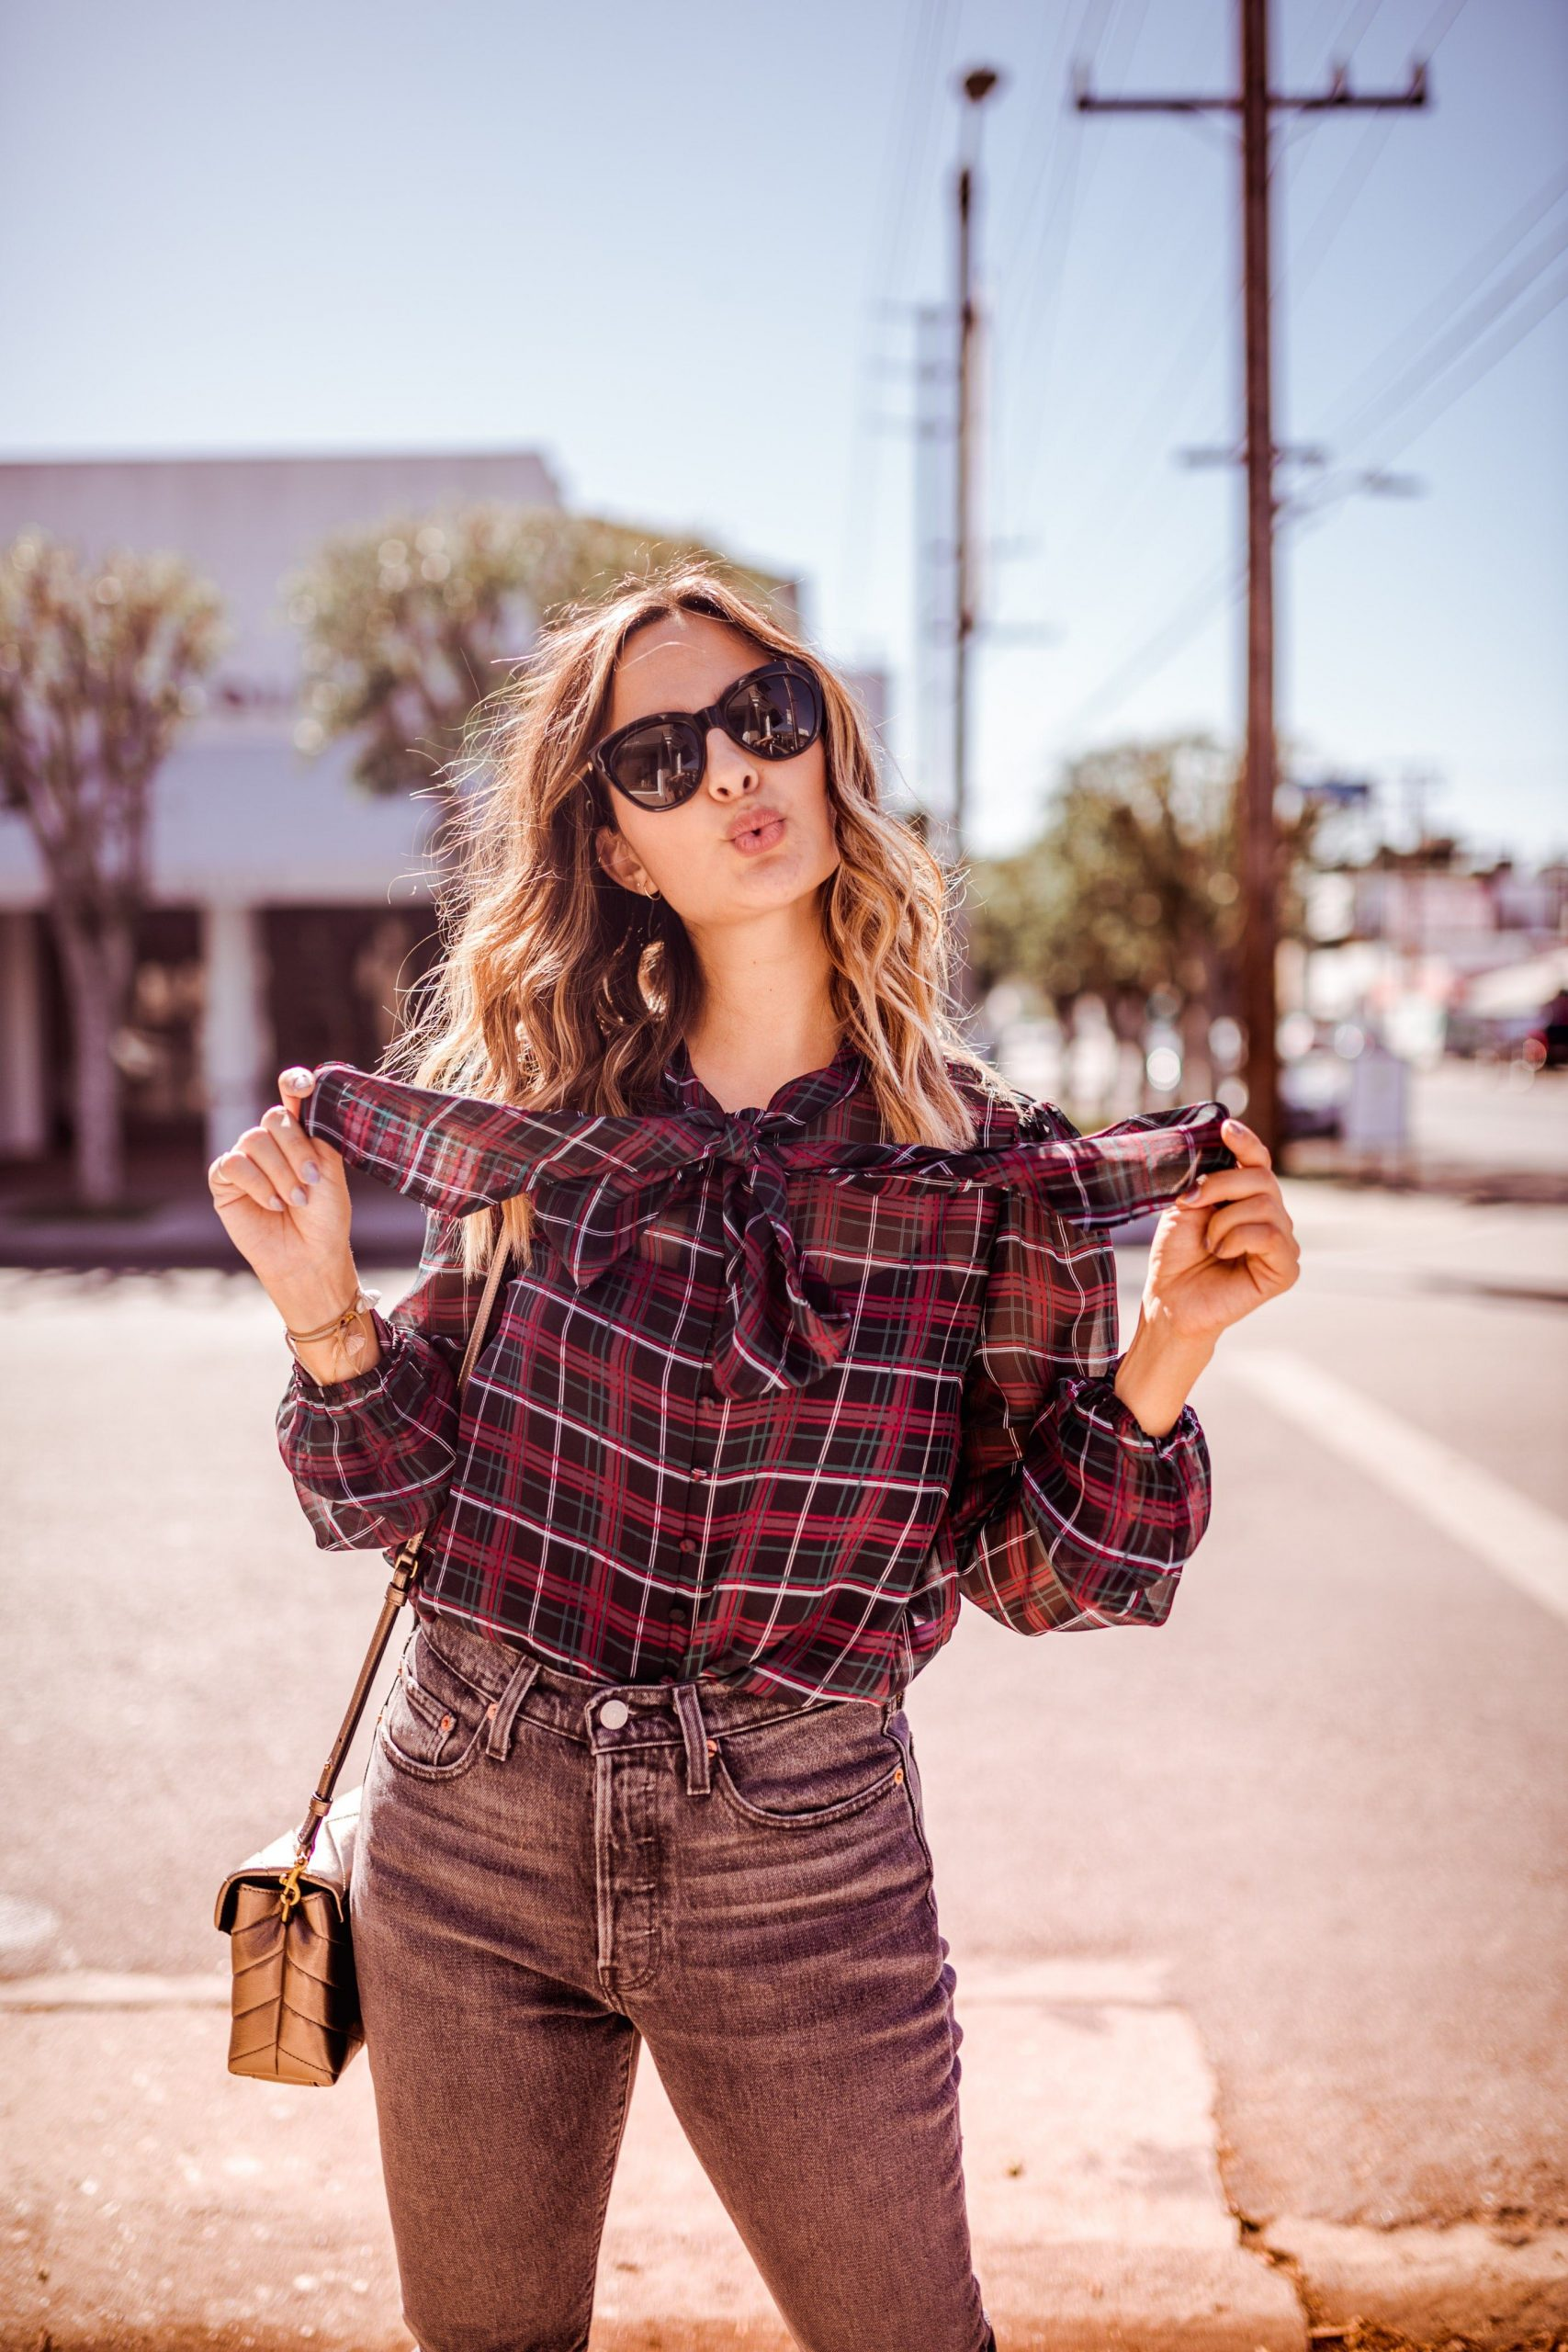 A plaid shirt is made up for casual outfits and also festival outfits